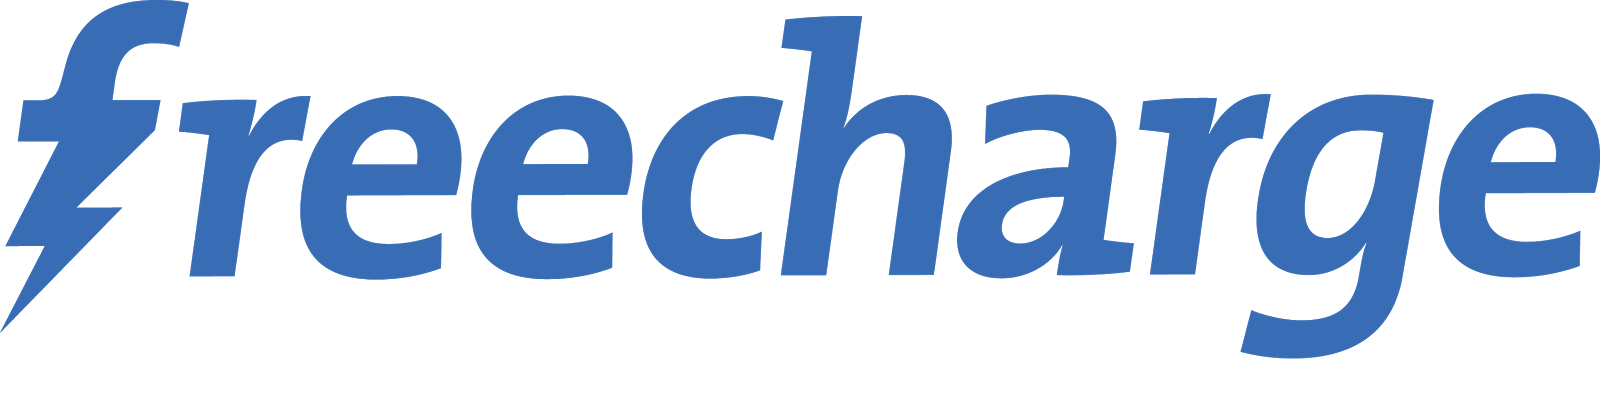 Recharge Tricks Offer Freecharge Get Rs 20 Cashback on recharge worth 20 Or Adove